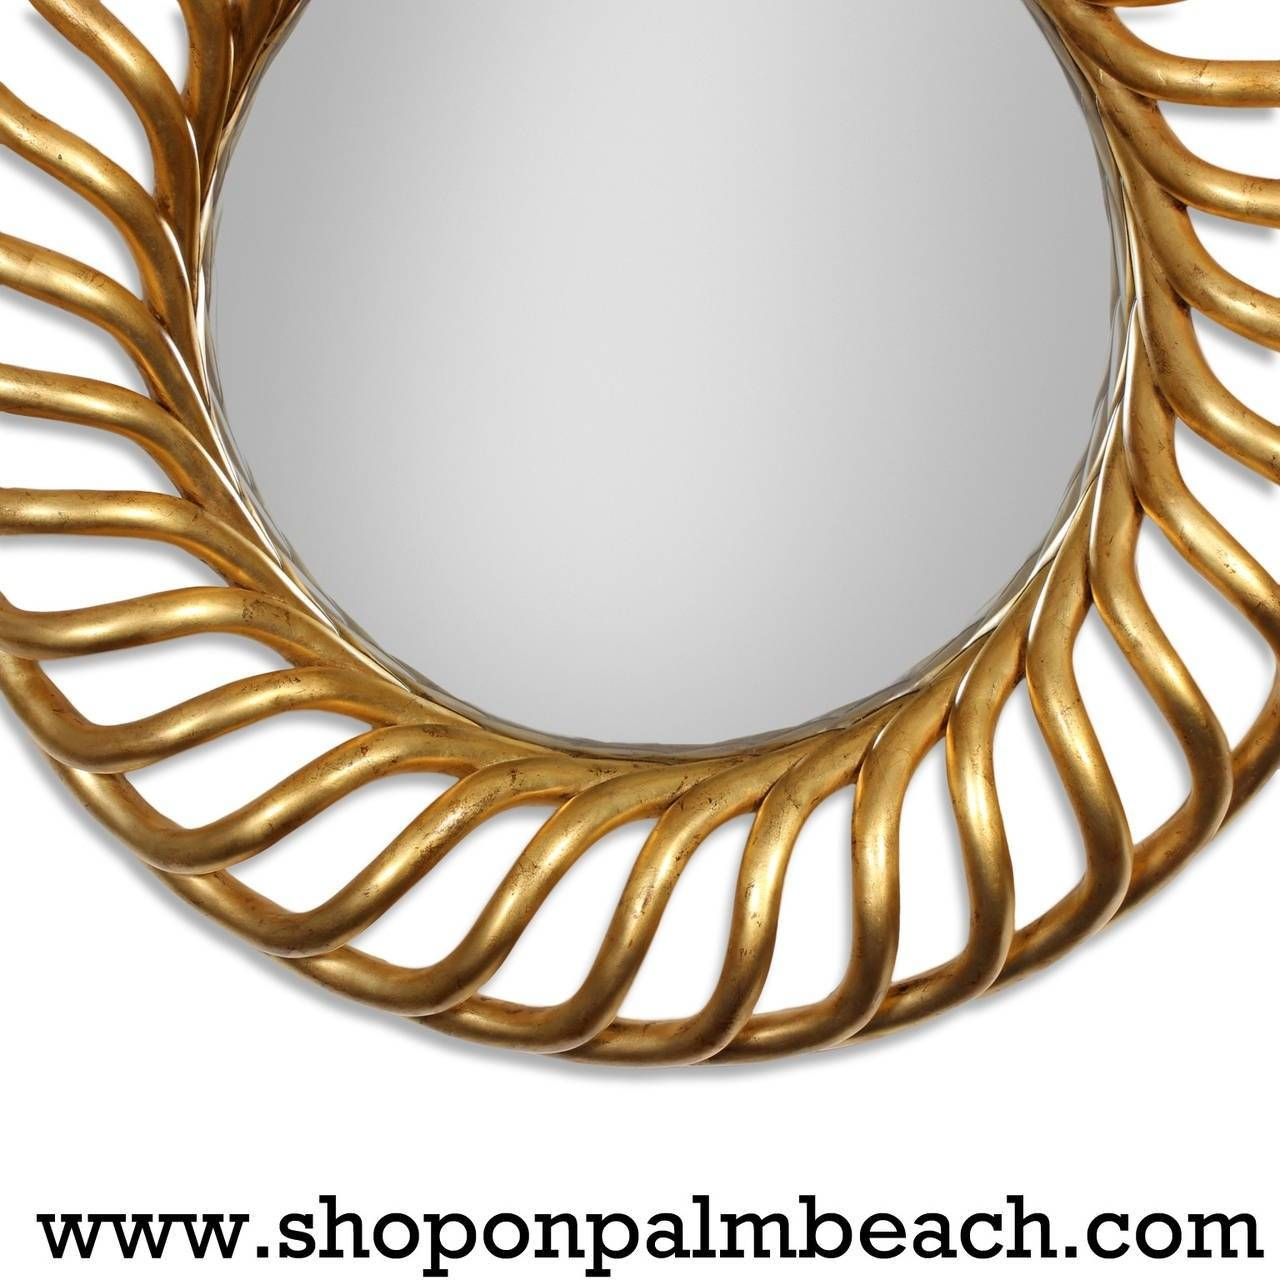 Large Round Gold Gilt Mirror For Sale At 1Stdibs with regard to Gold Round Mirrors (Image 13 of 25)